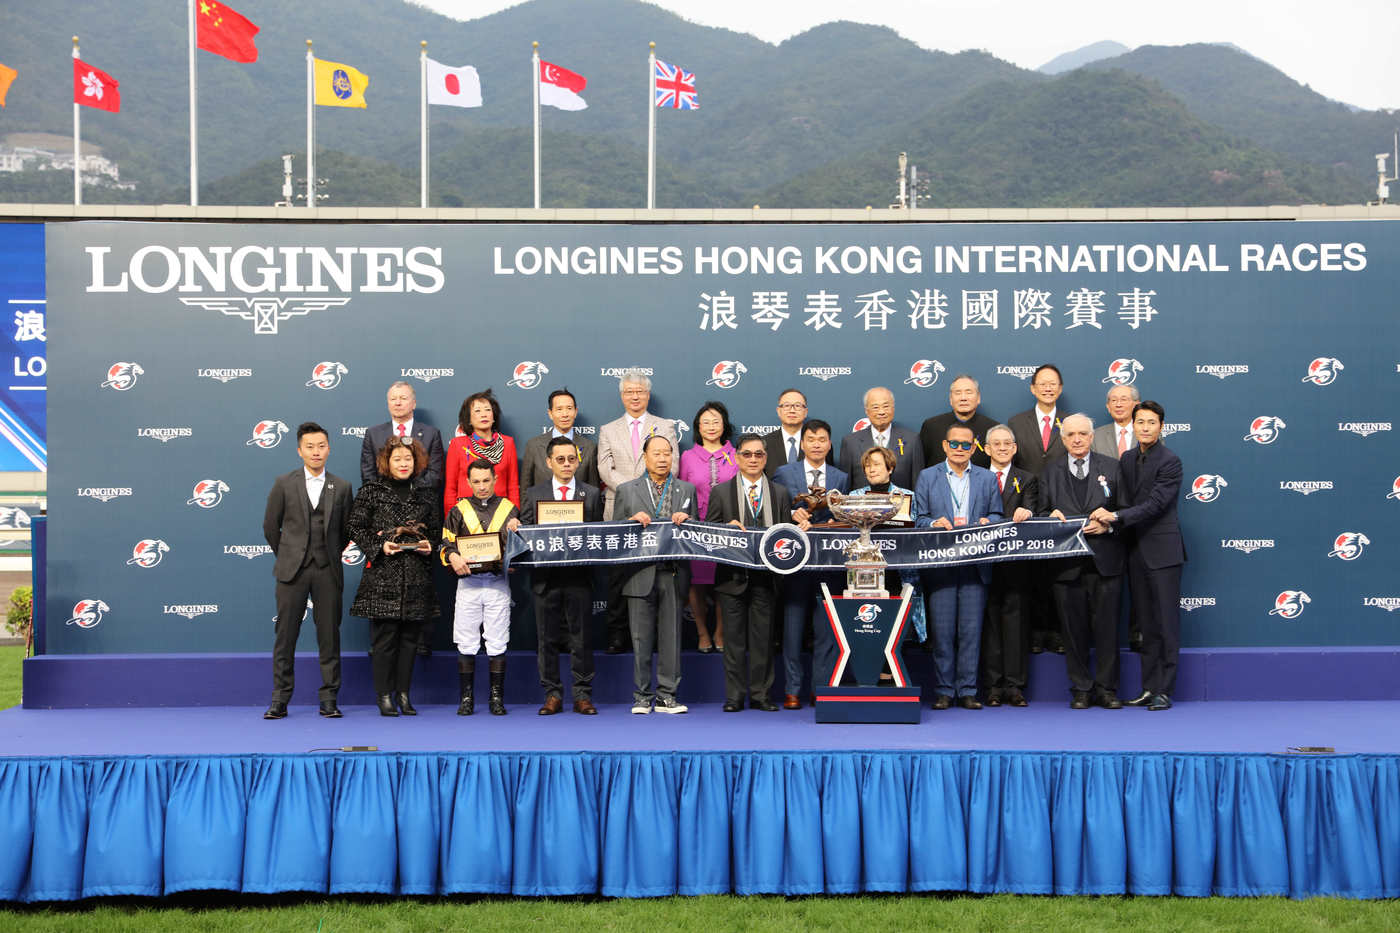 Longines Flat Racing Event: The Longines Hong Kong International Races:  four races, four chances to become a legend 2